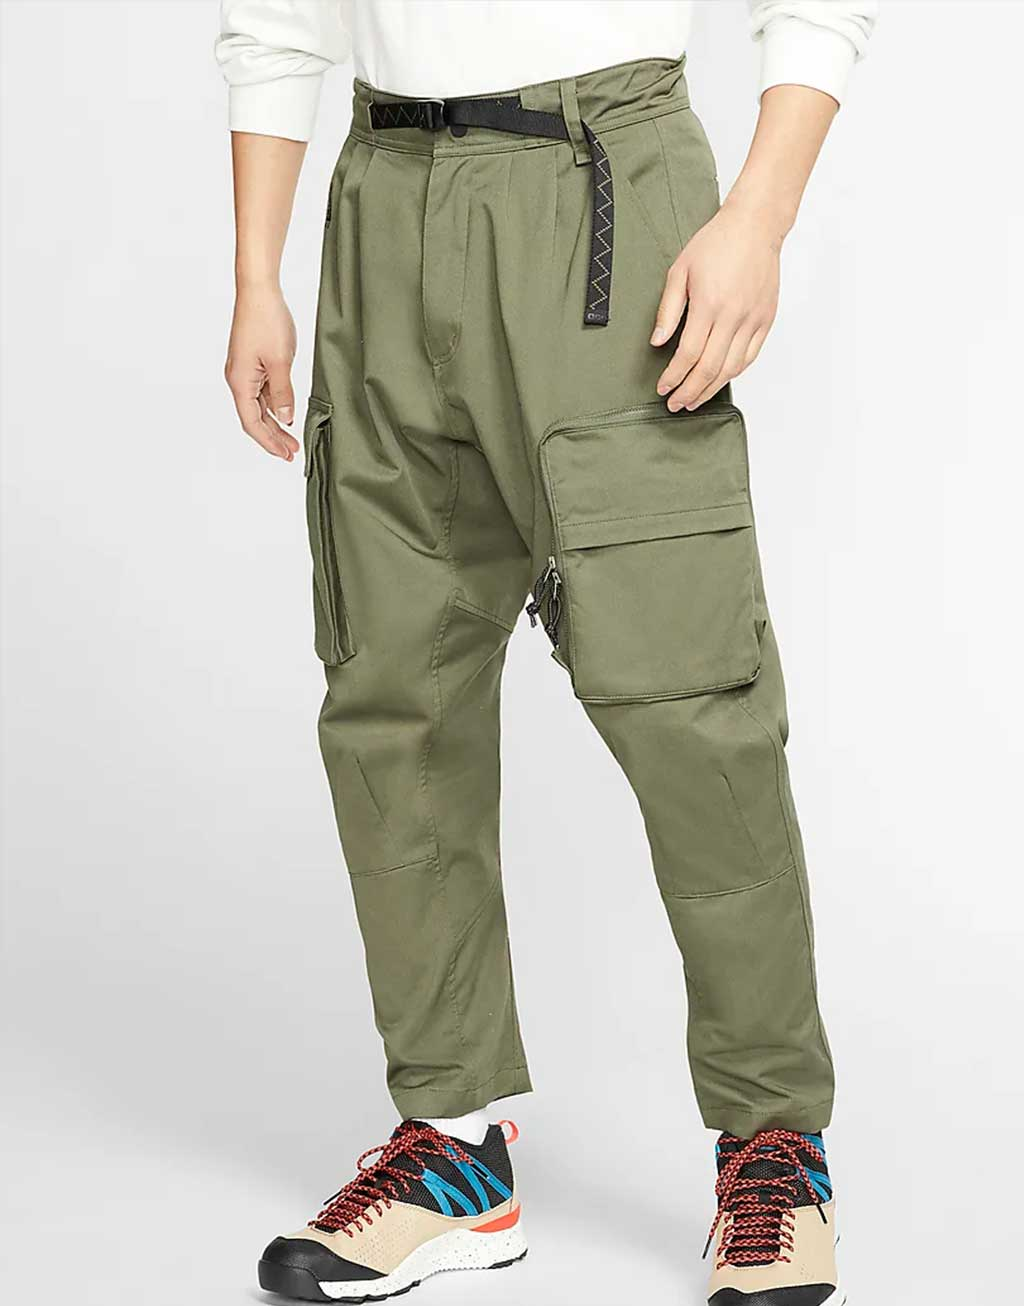 best techwear pants 9